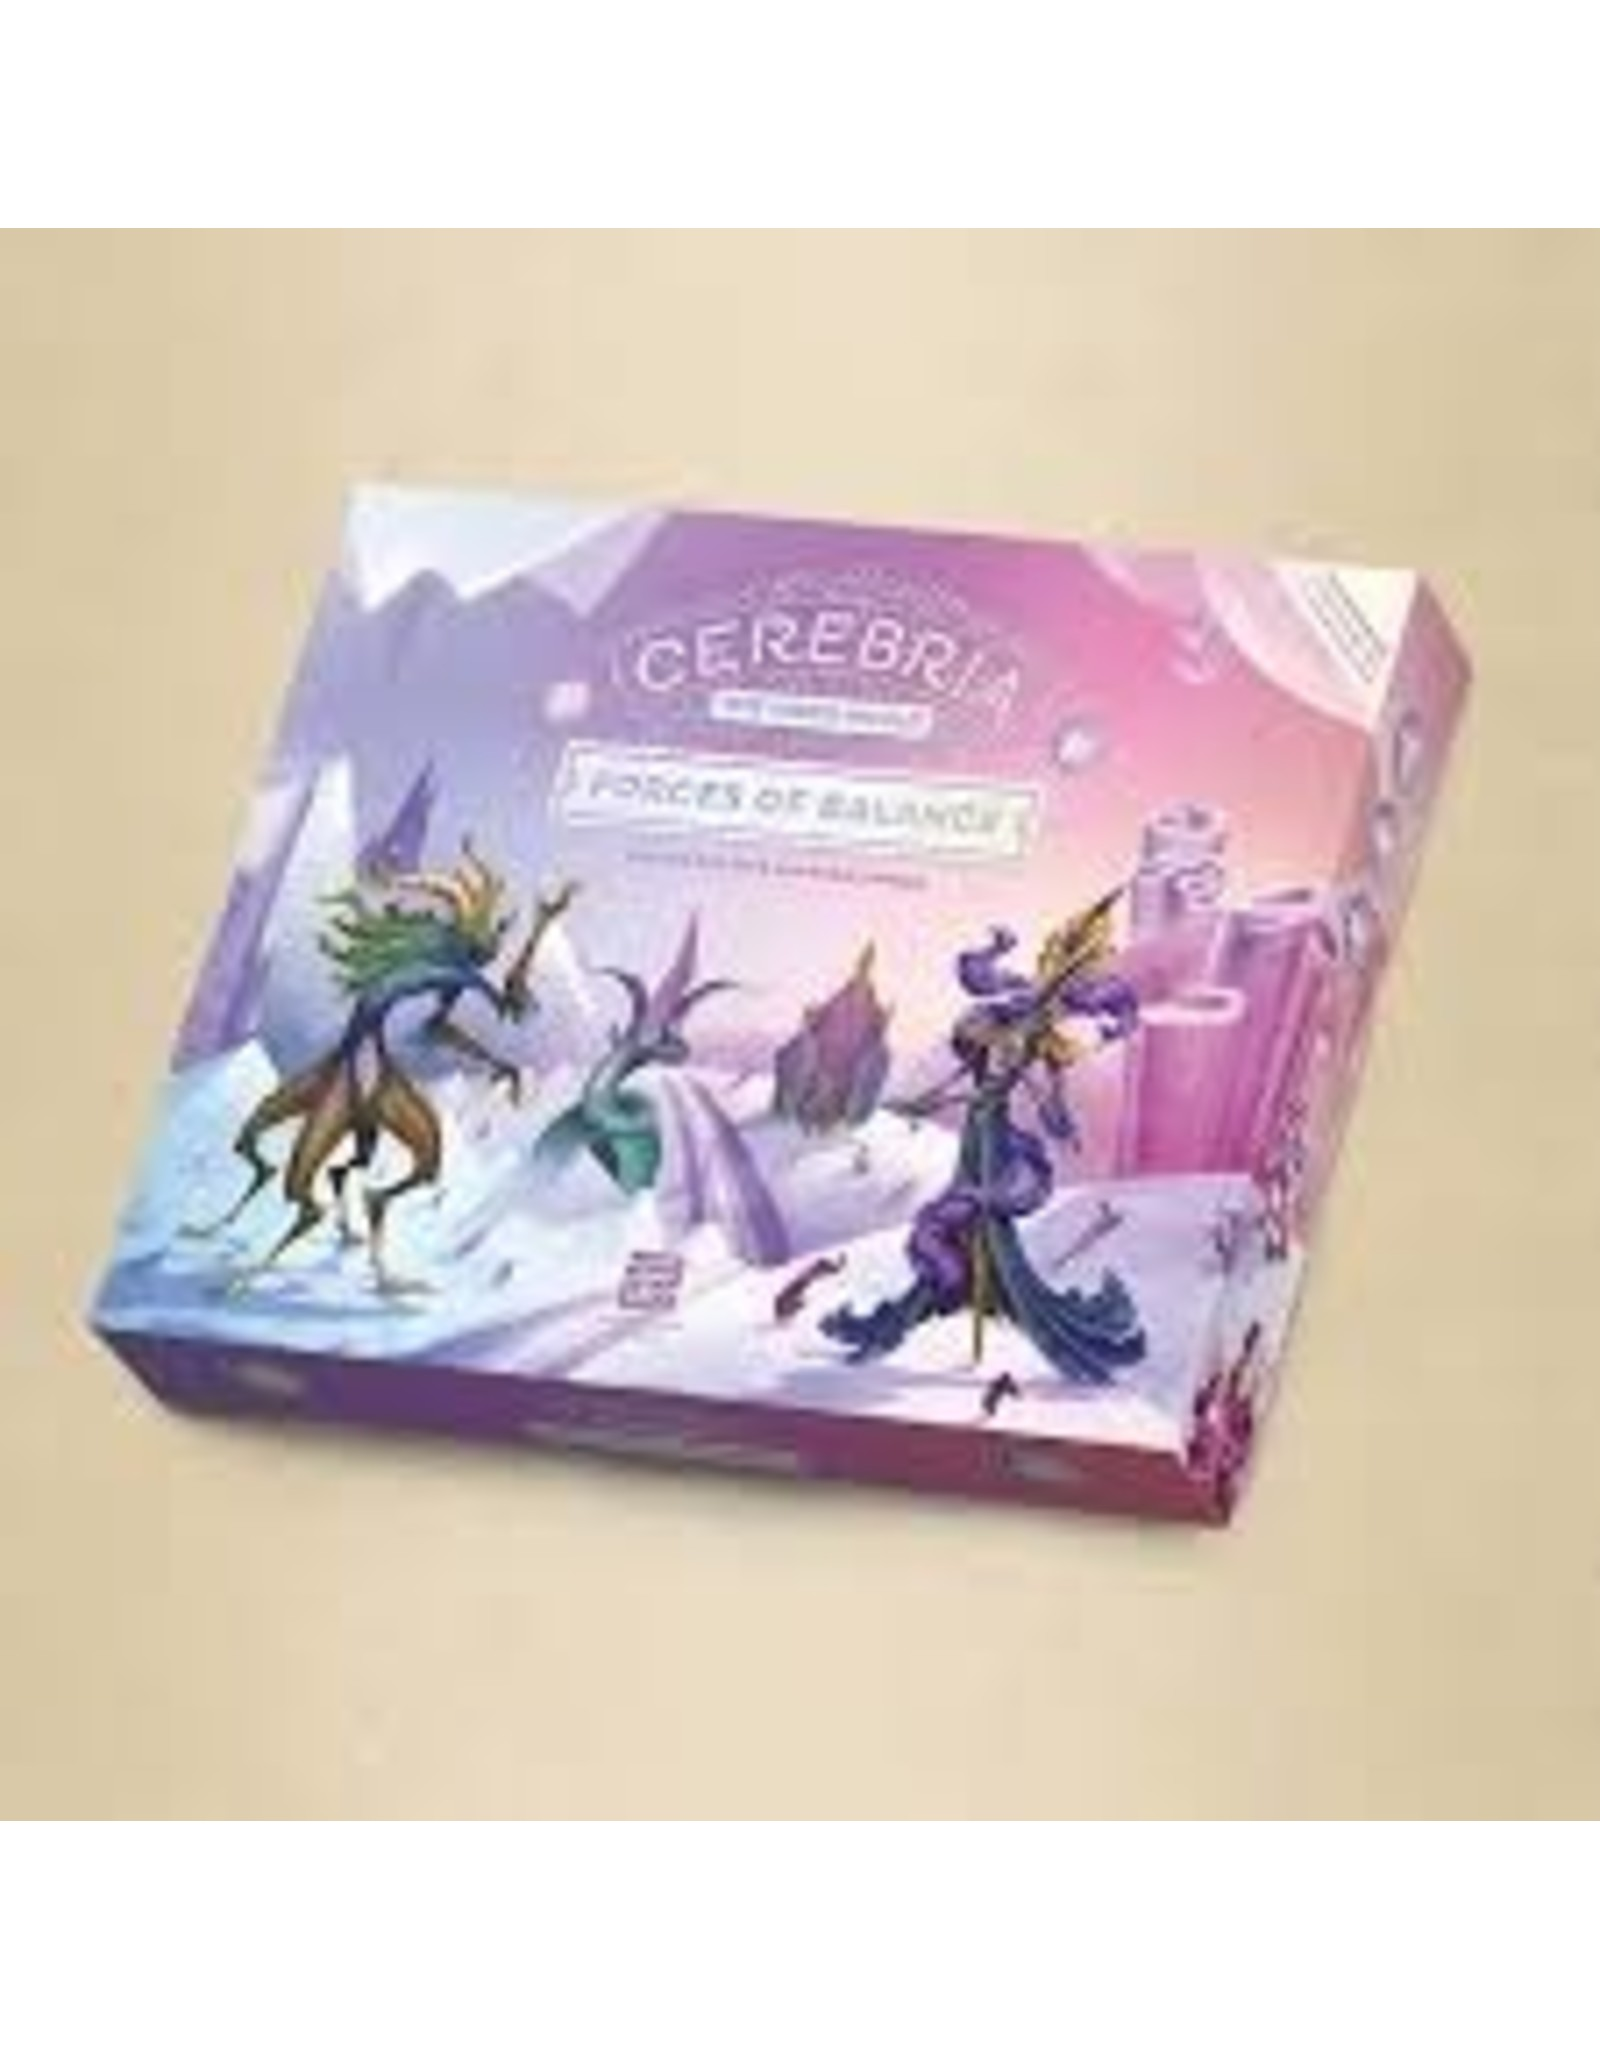 Cerebria Forces of Balance Expansion